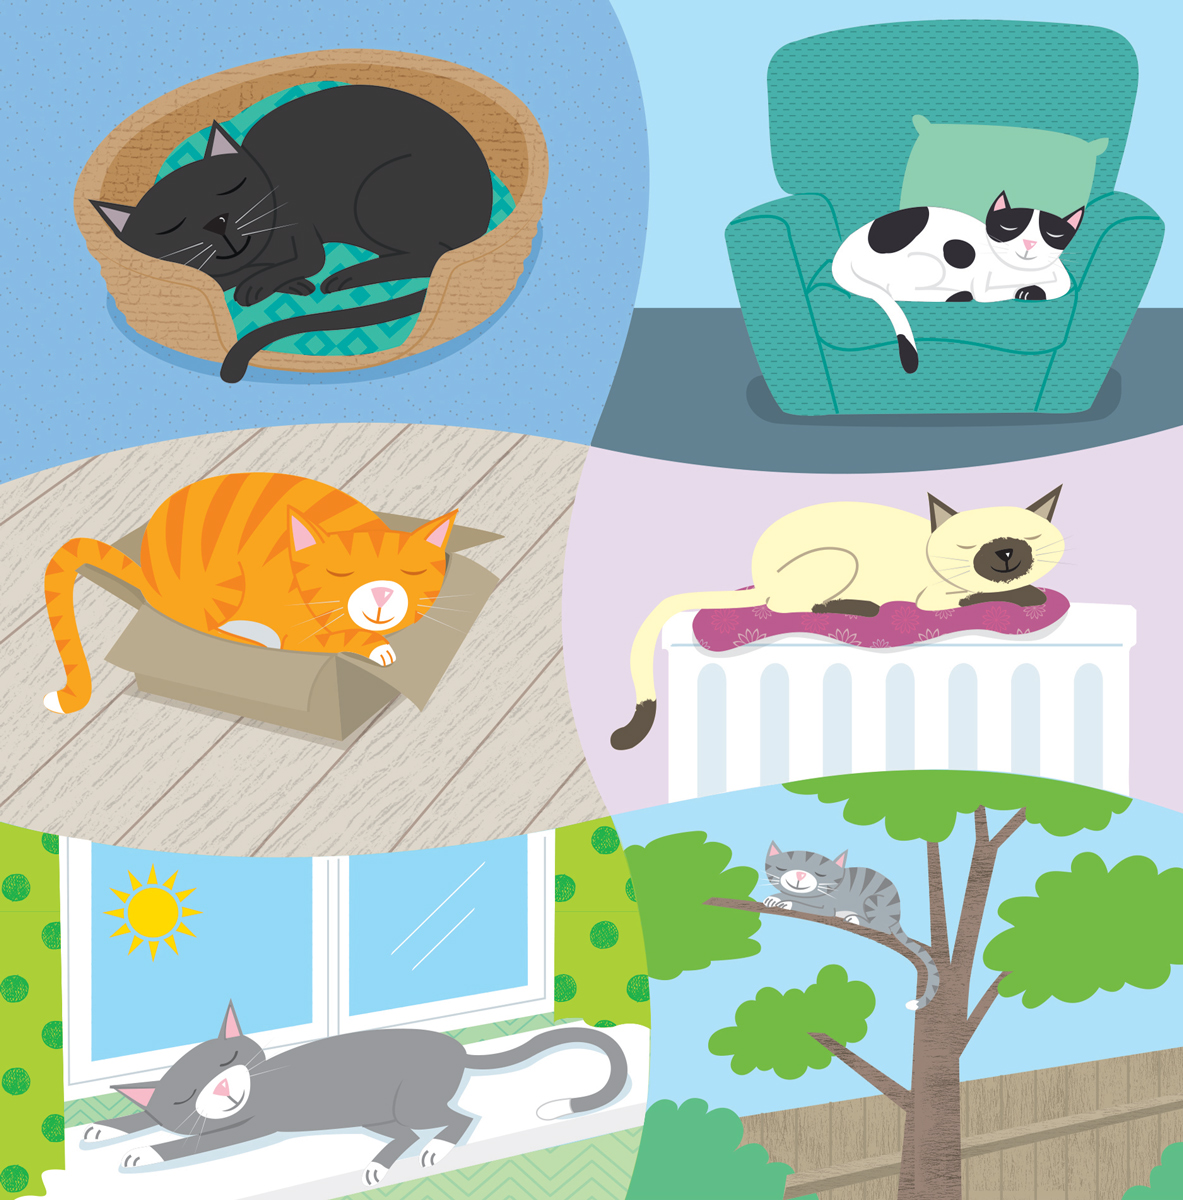 Cats, cats sleeping, vector cats, cartoon cats